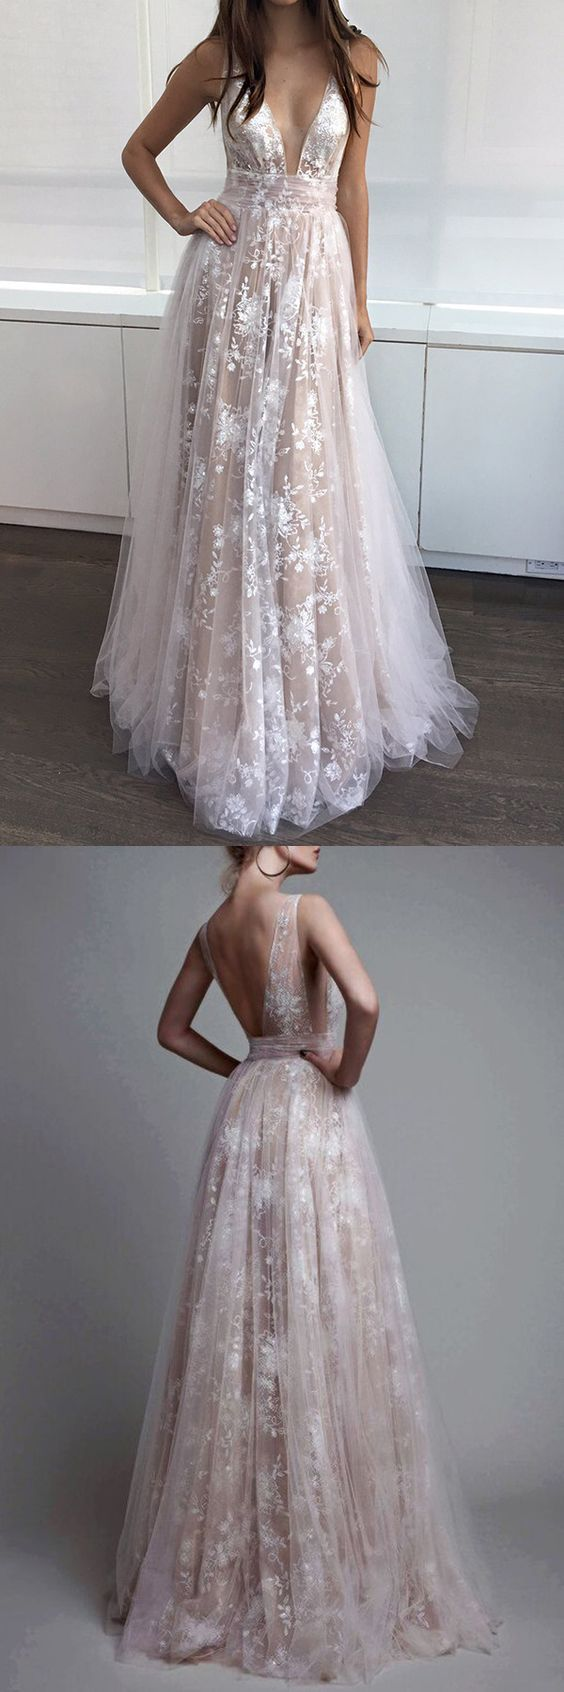 Lace prom dresses, Long prom dress, 2017 prom dress, dresses for prom, Sexy prom dresses · lovingdress · Online Store Powered by Storenvy